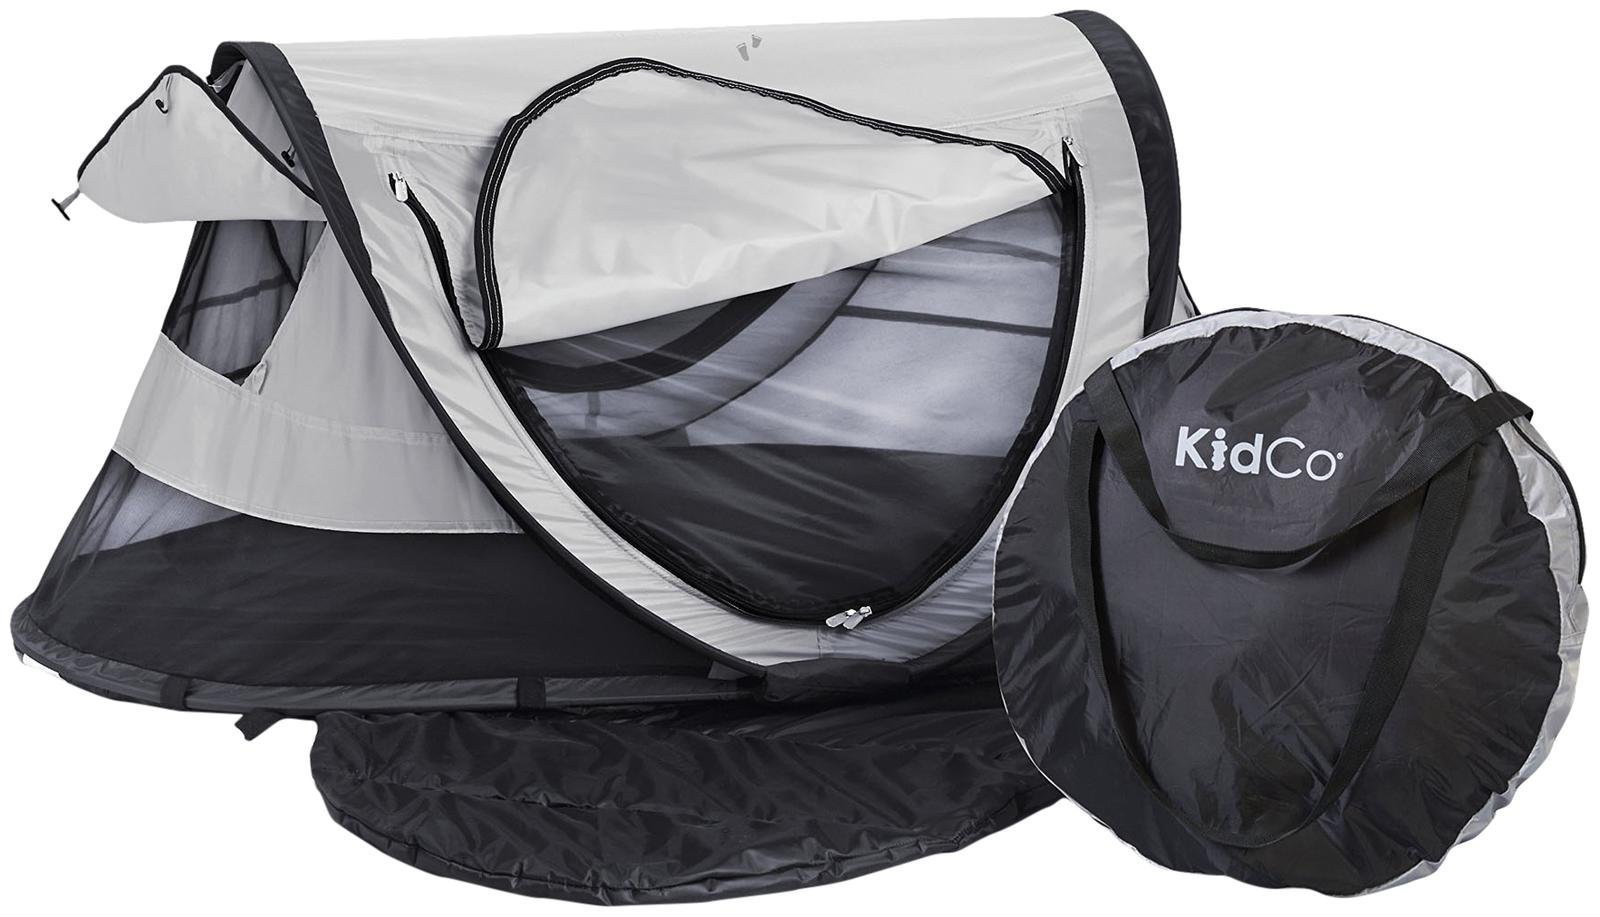 KidCo P4012 Peapod Plus Infant Travel Bed, Midnight by KidCo